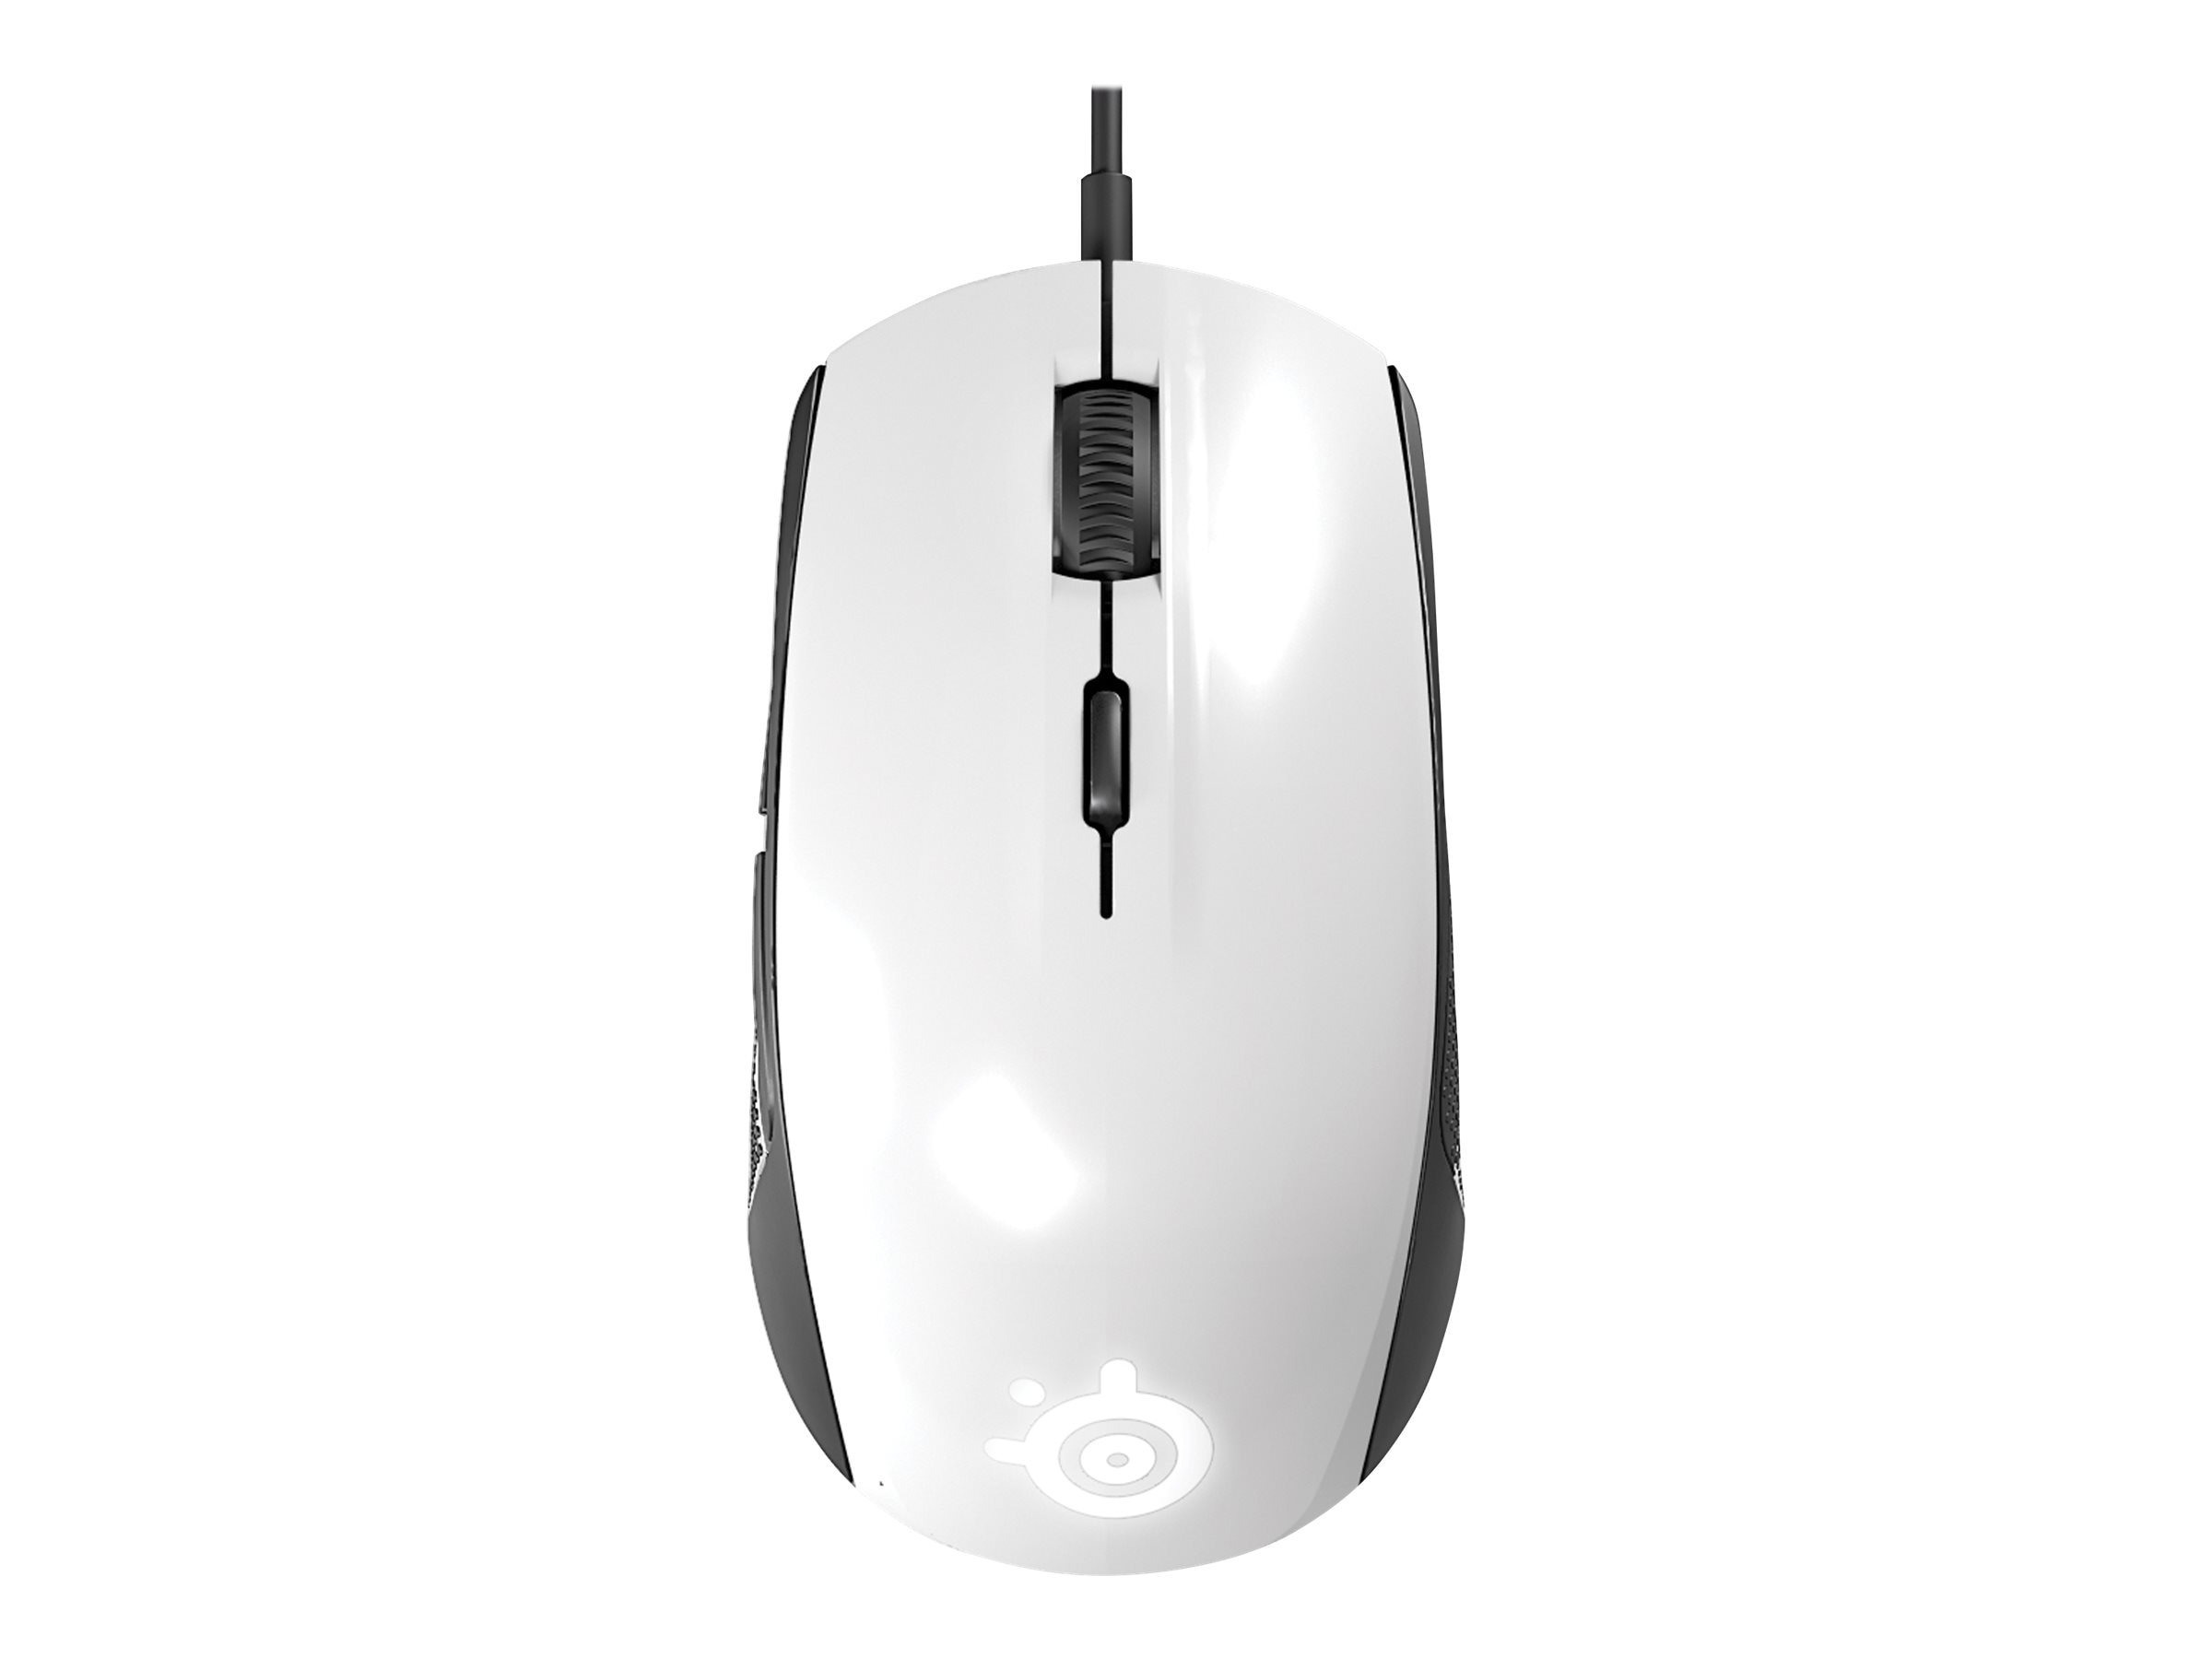 Steelseries 62335 Image 2